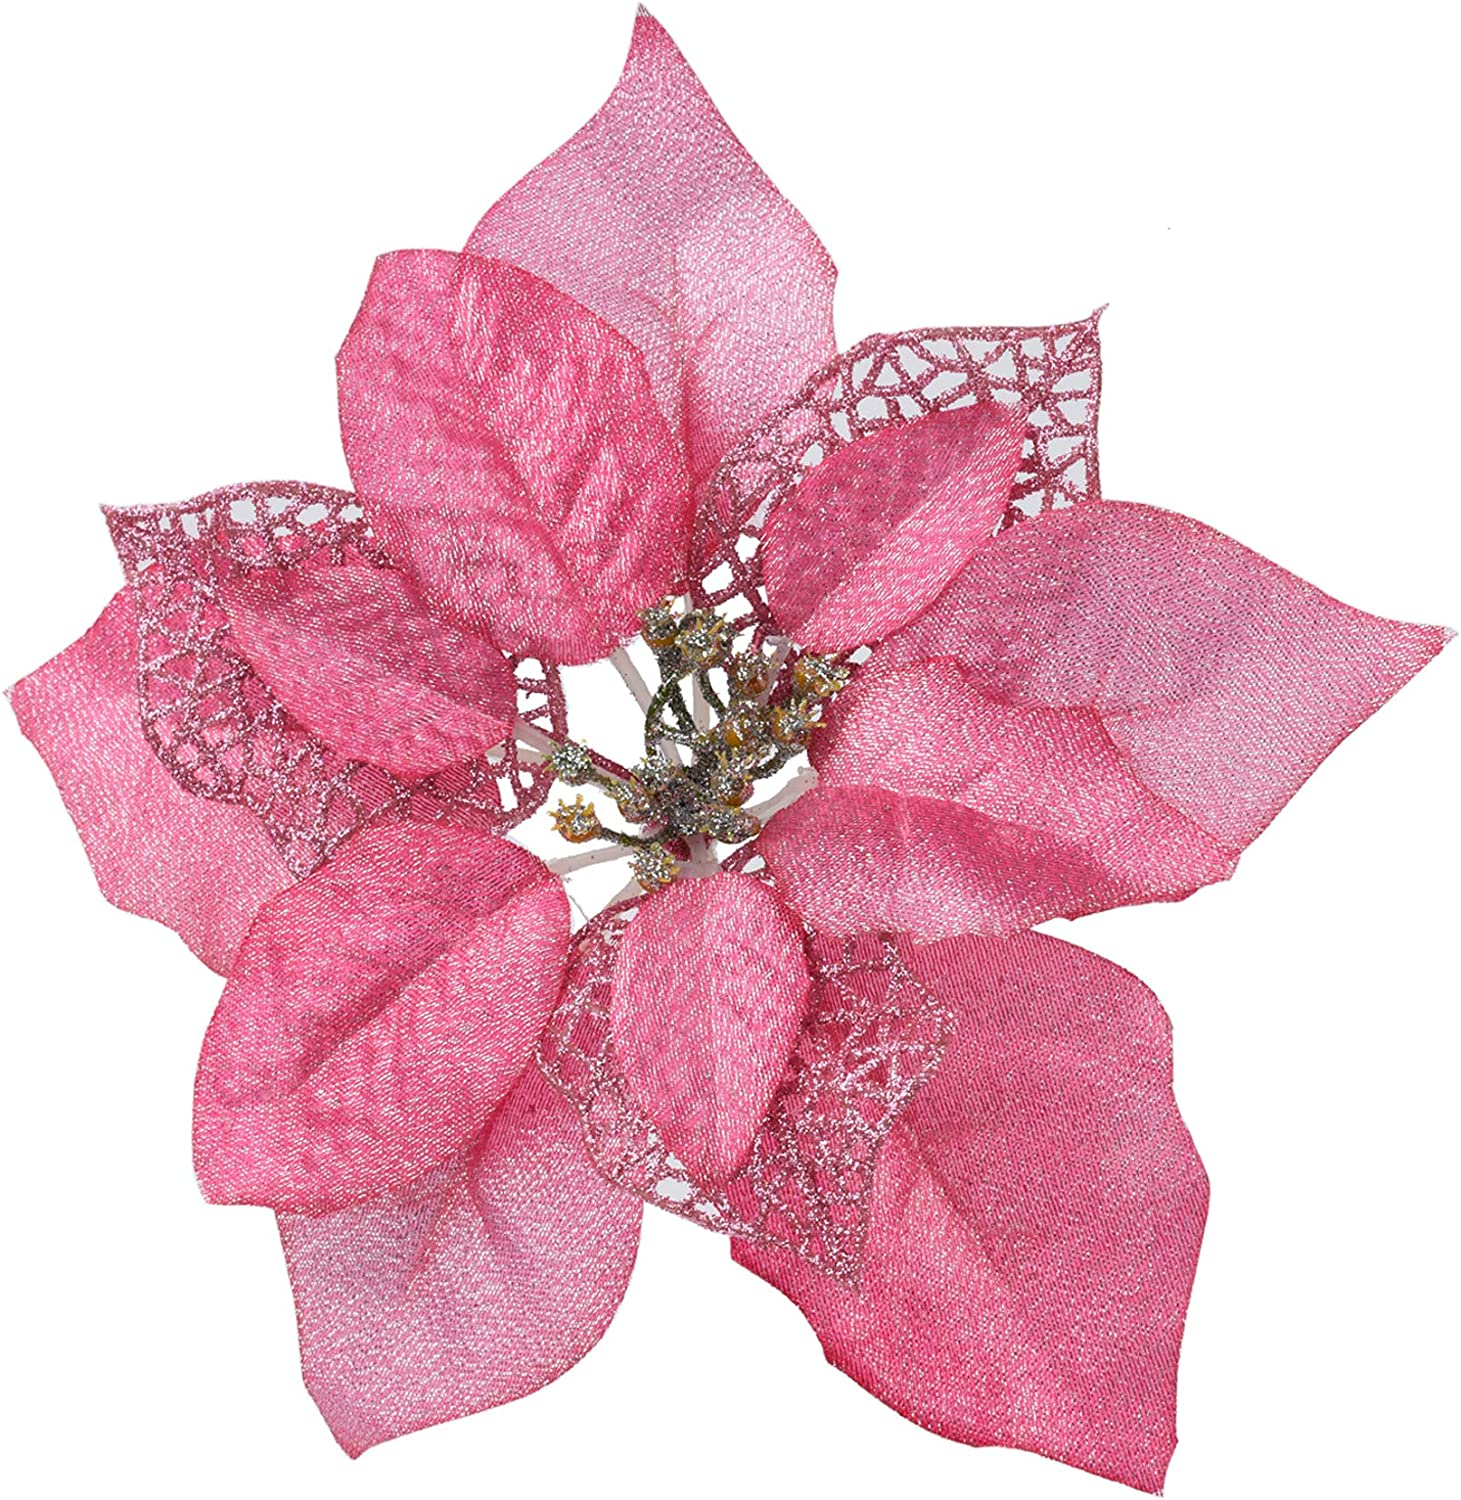 LEVOSHUA 12 Pack Glitter Poinsettia Christmas Tree Ornaments Christmas Tree Decoration Poinsettia Flowers with Stems for Wreath Garland Mantle Centerpiece(Pink)